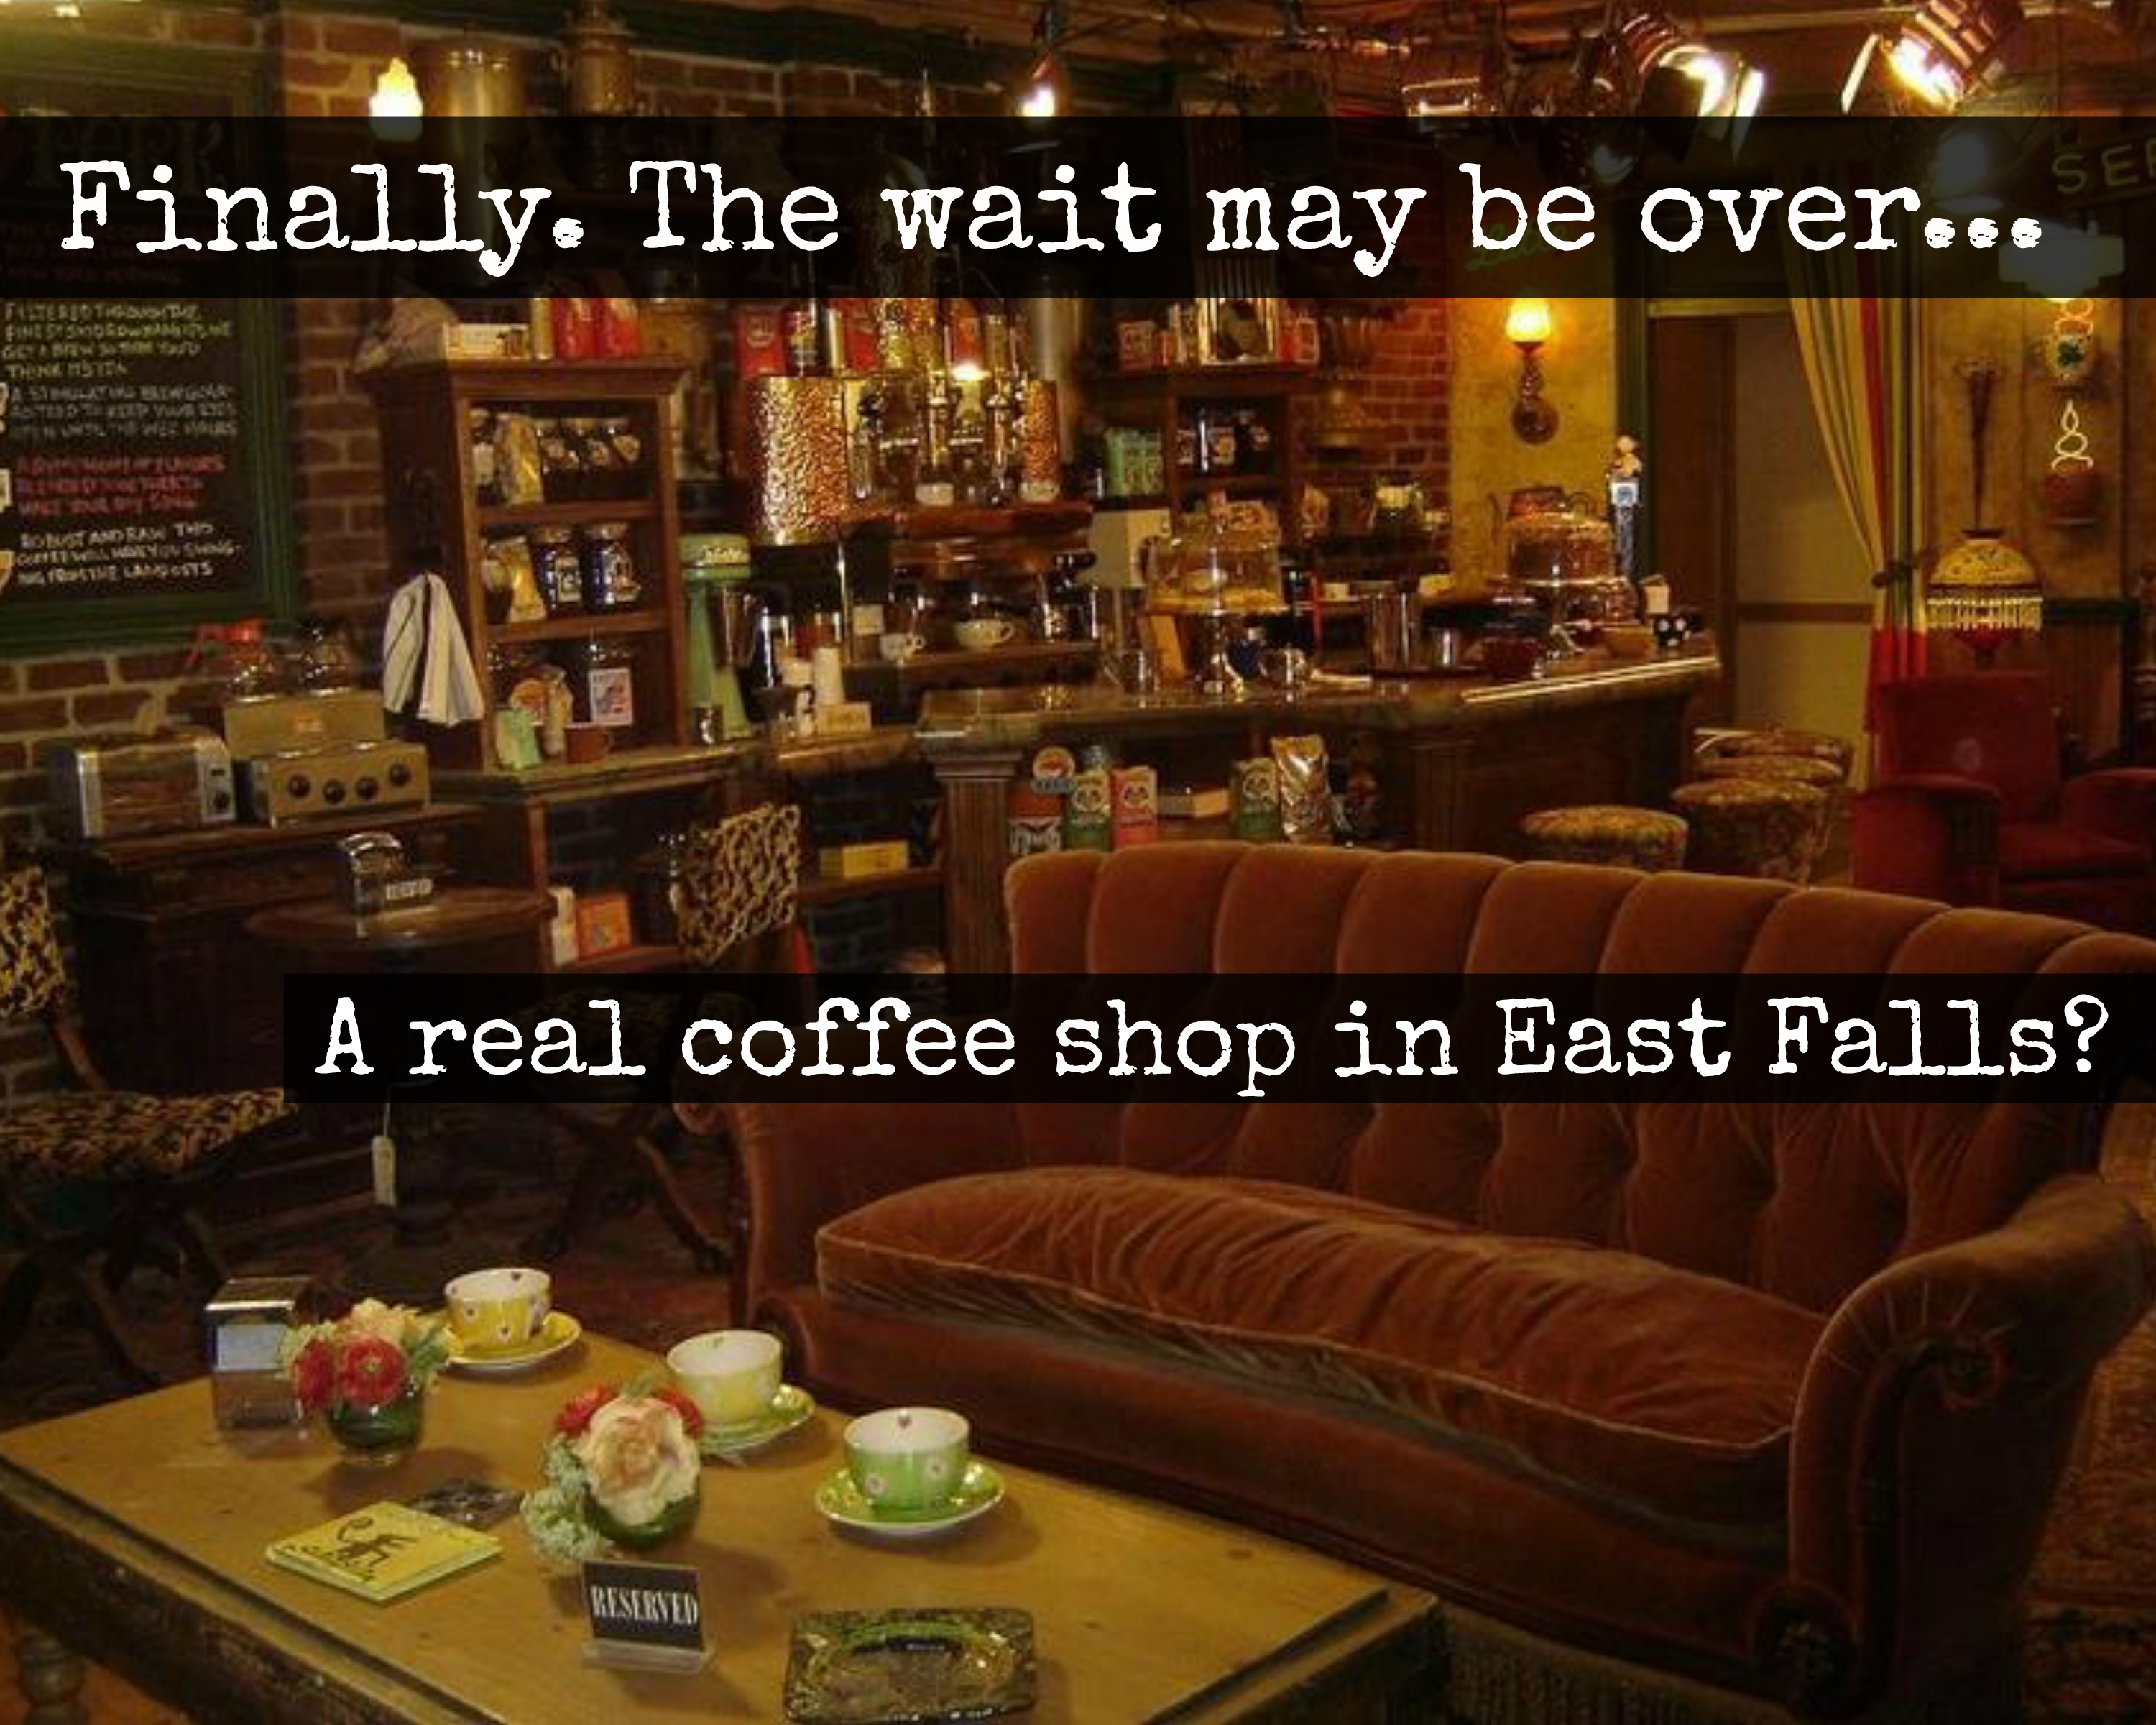 EastFallsLocal a real coffeeshop in East Falls